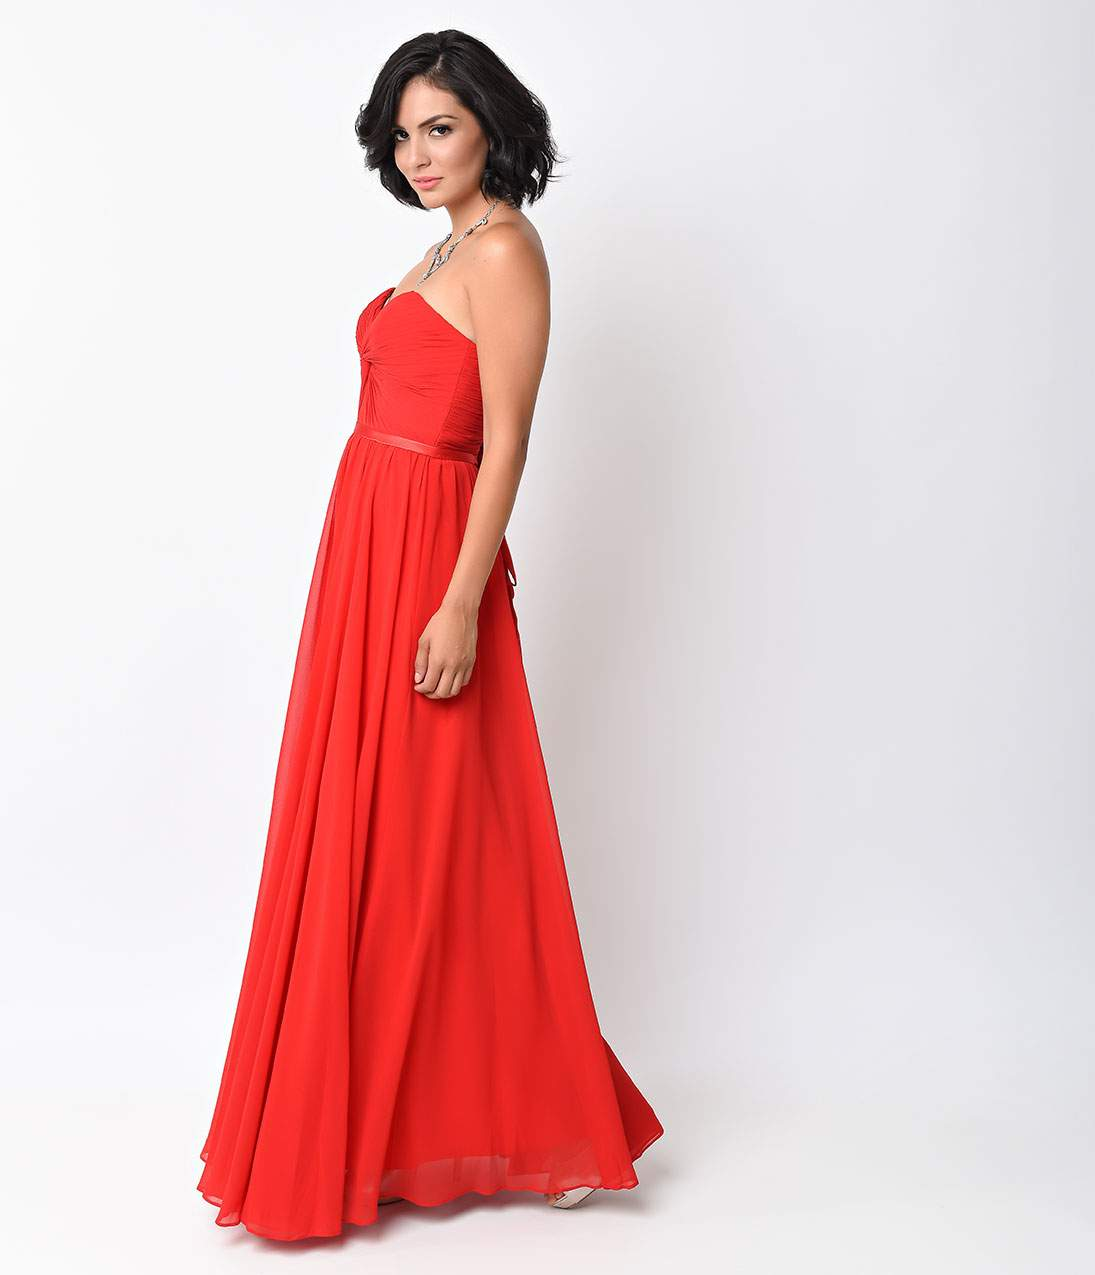 Red Chiffon Strapless Sweetheart Corset Long Gown – Unique Vintage